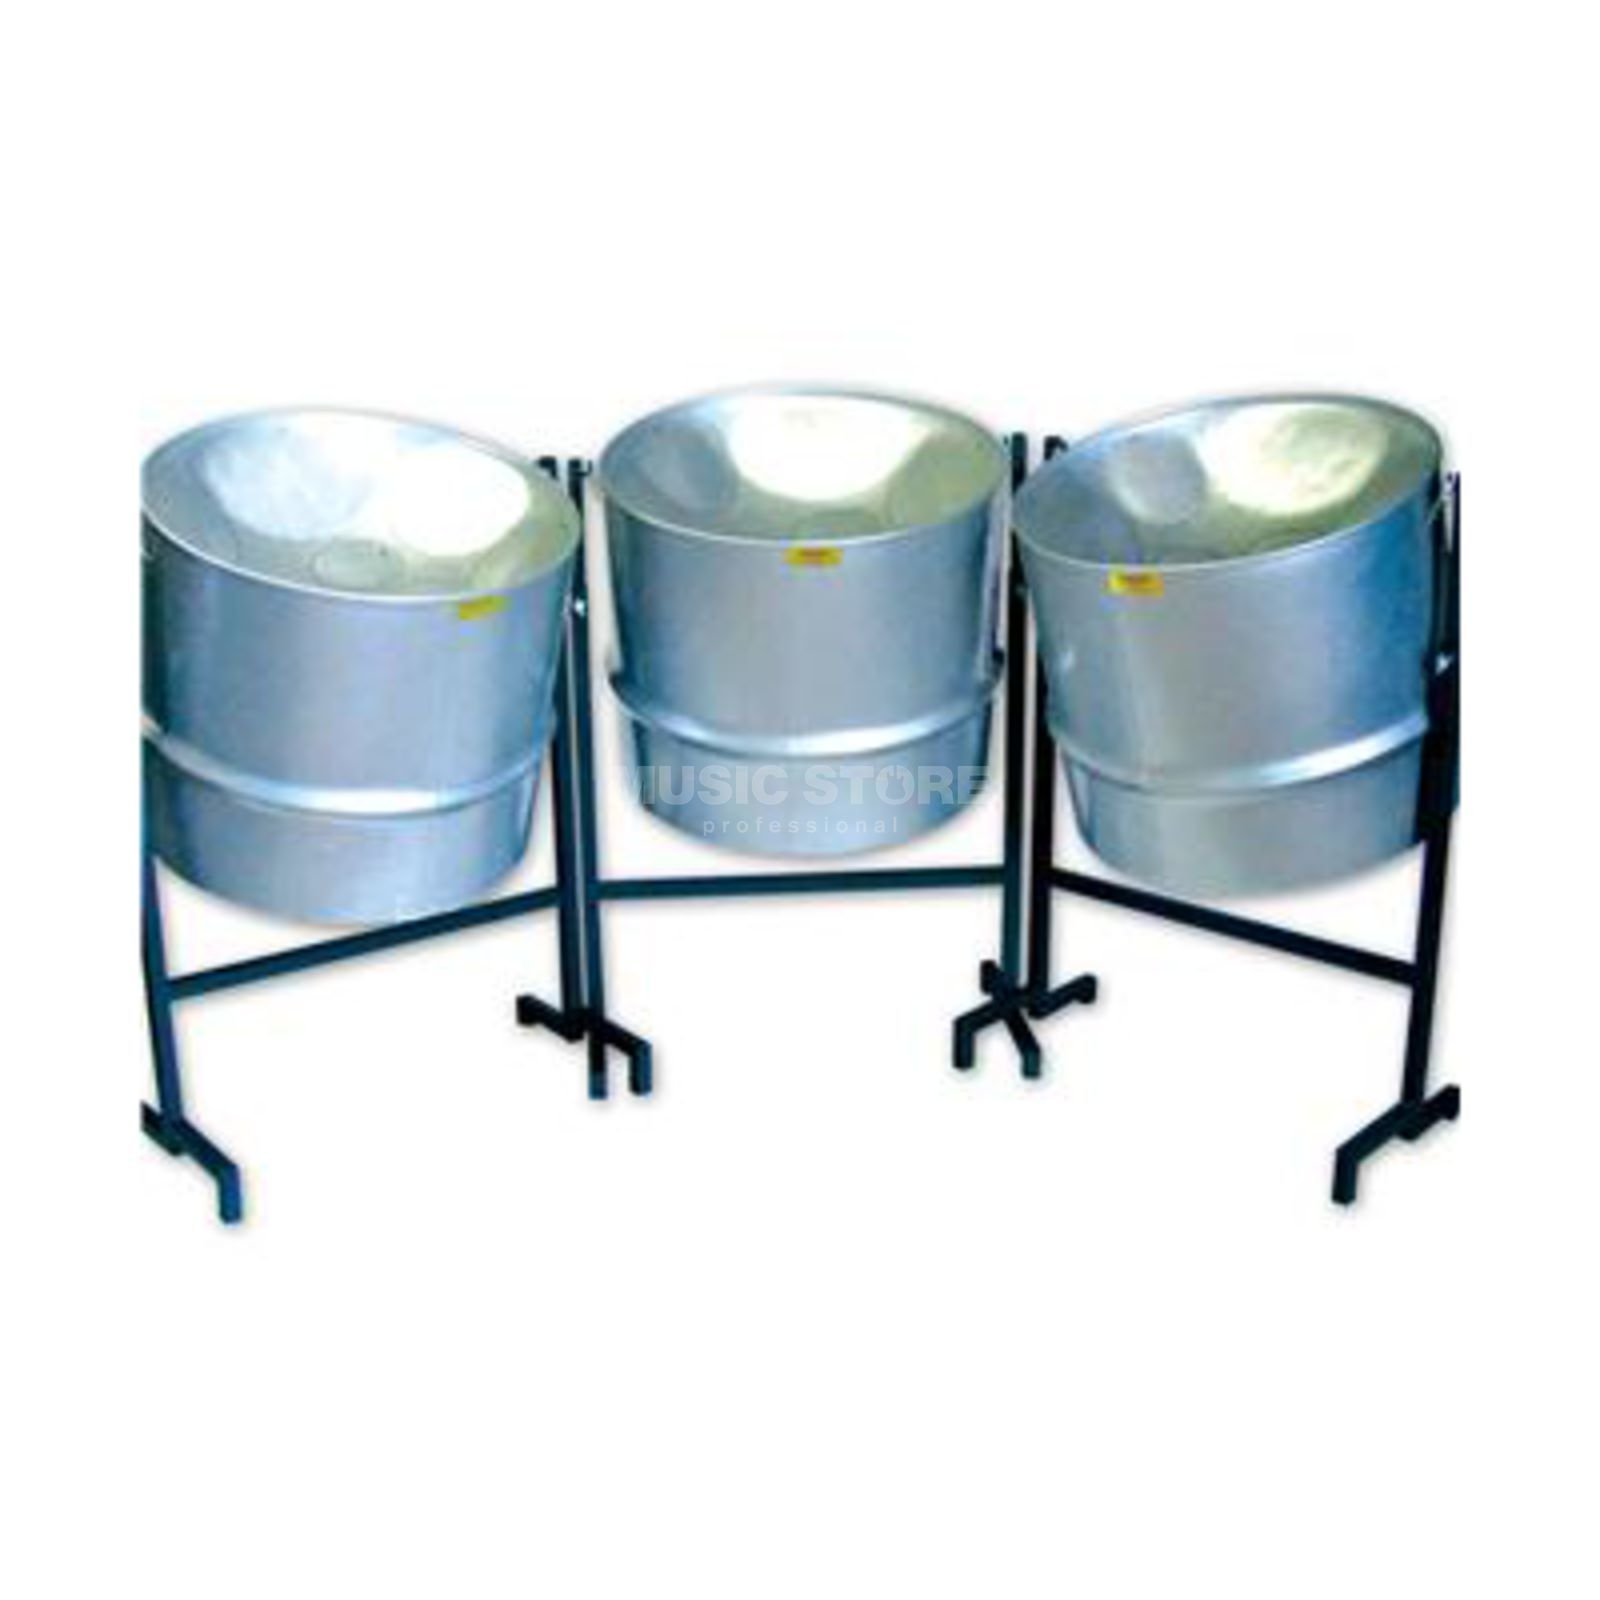 Percussion Plus Steelpan Triple Cello PP445 Produktbild